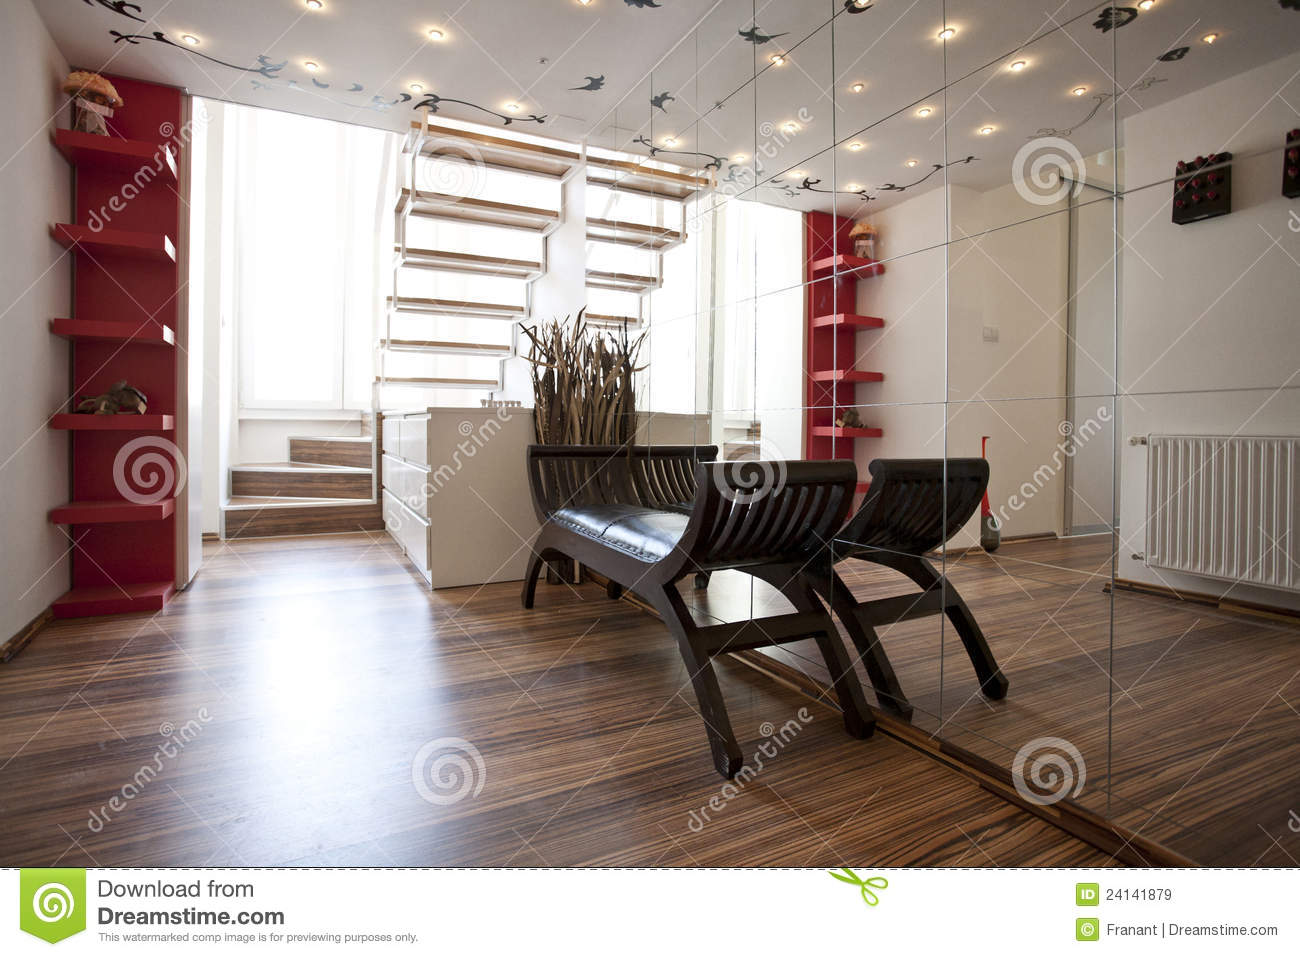 Home lobby interior design royalty free stock images for Photo gallery of interior designs